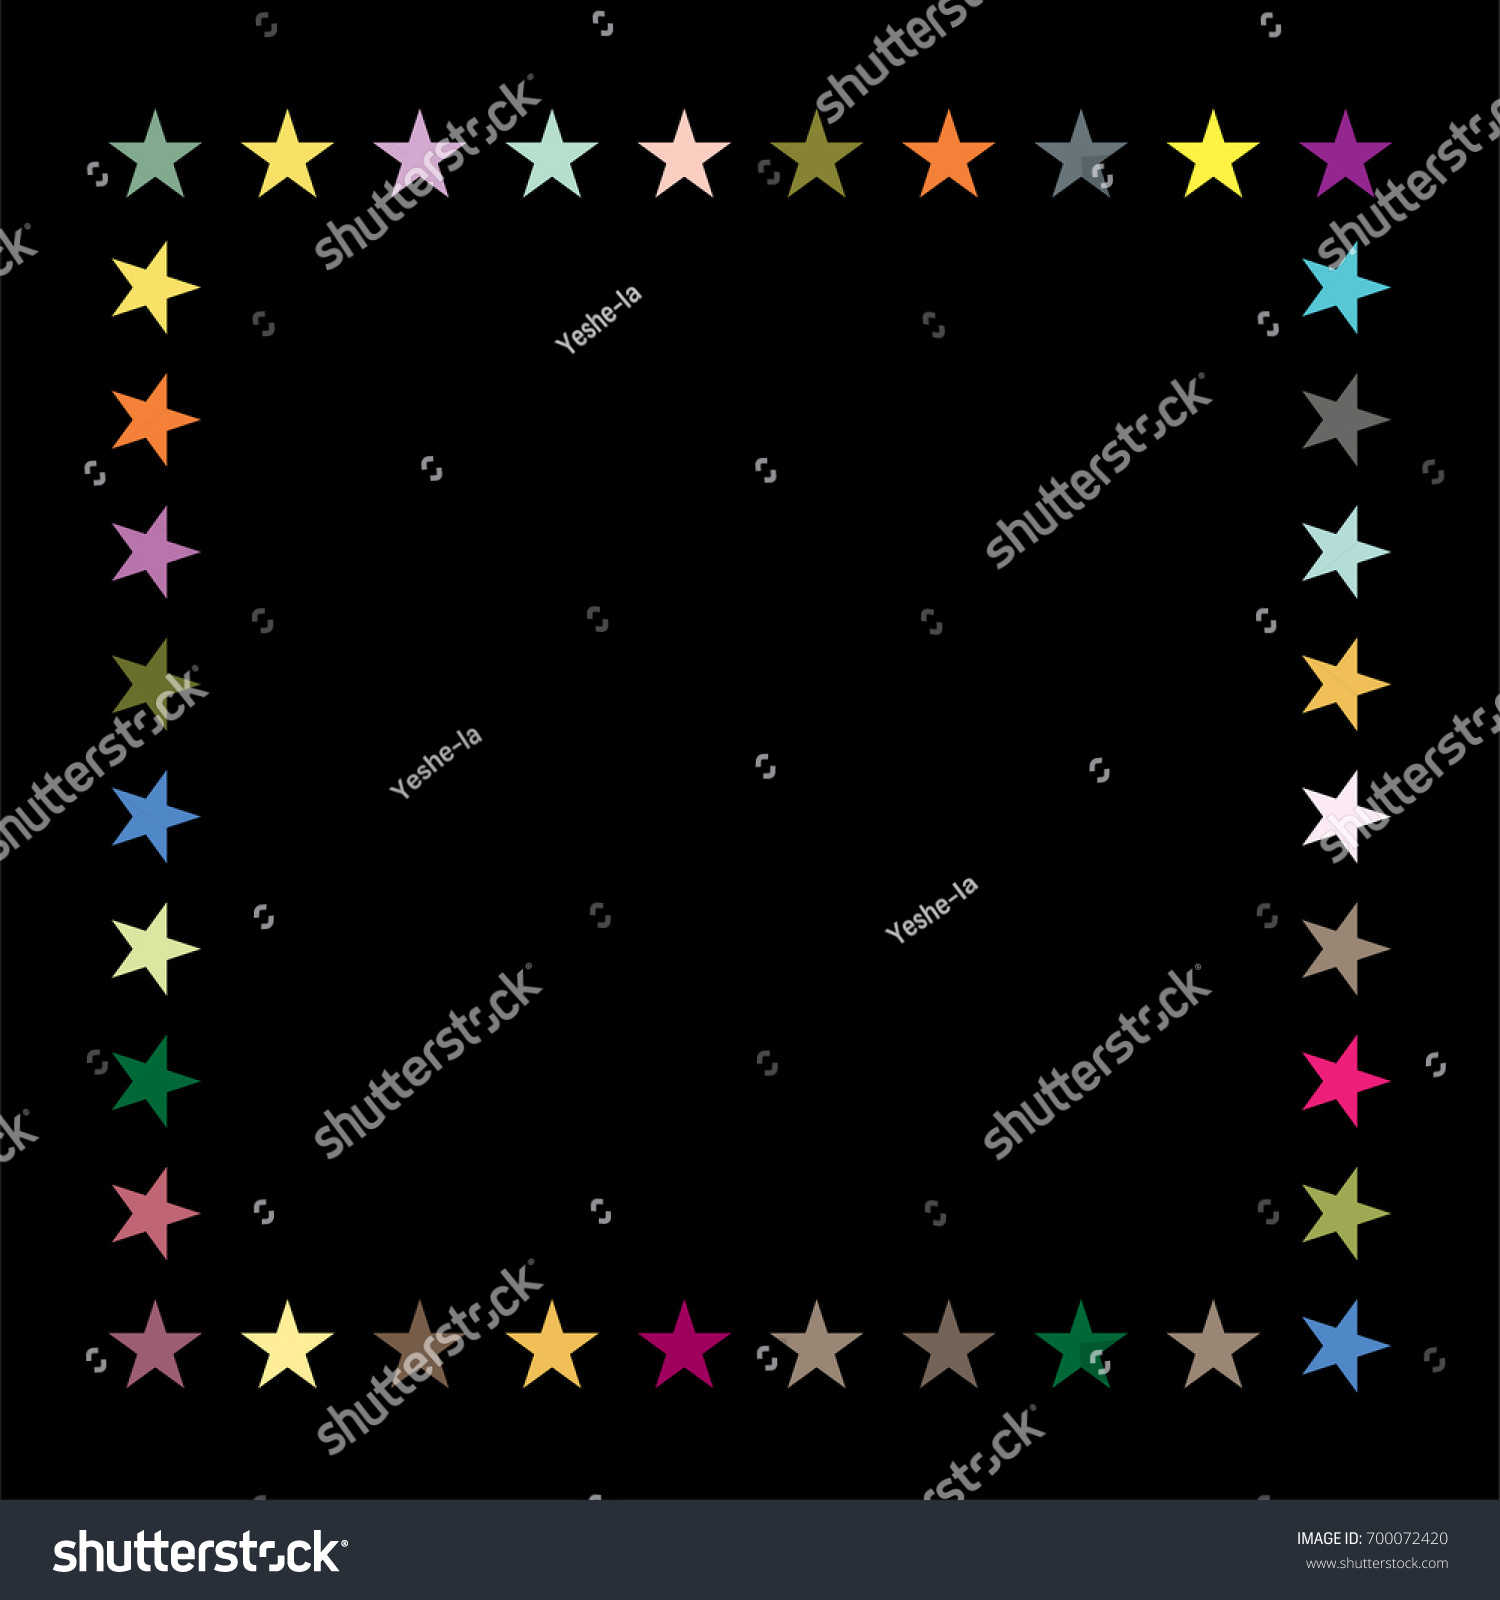 vector jolly starry border in rainbow colors on black shiny stars childrens design festive